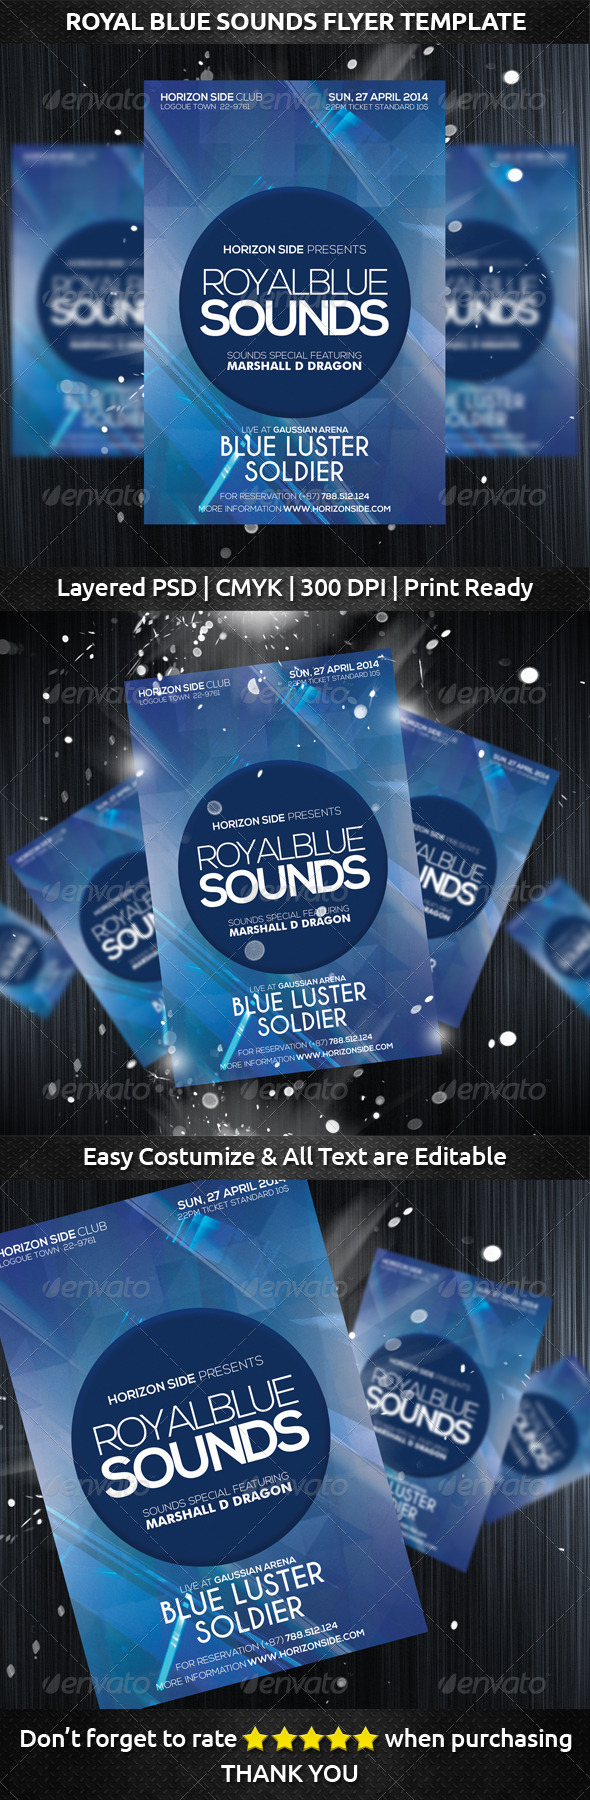 Royal Blue Sounds Flyer Template